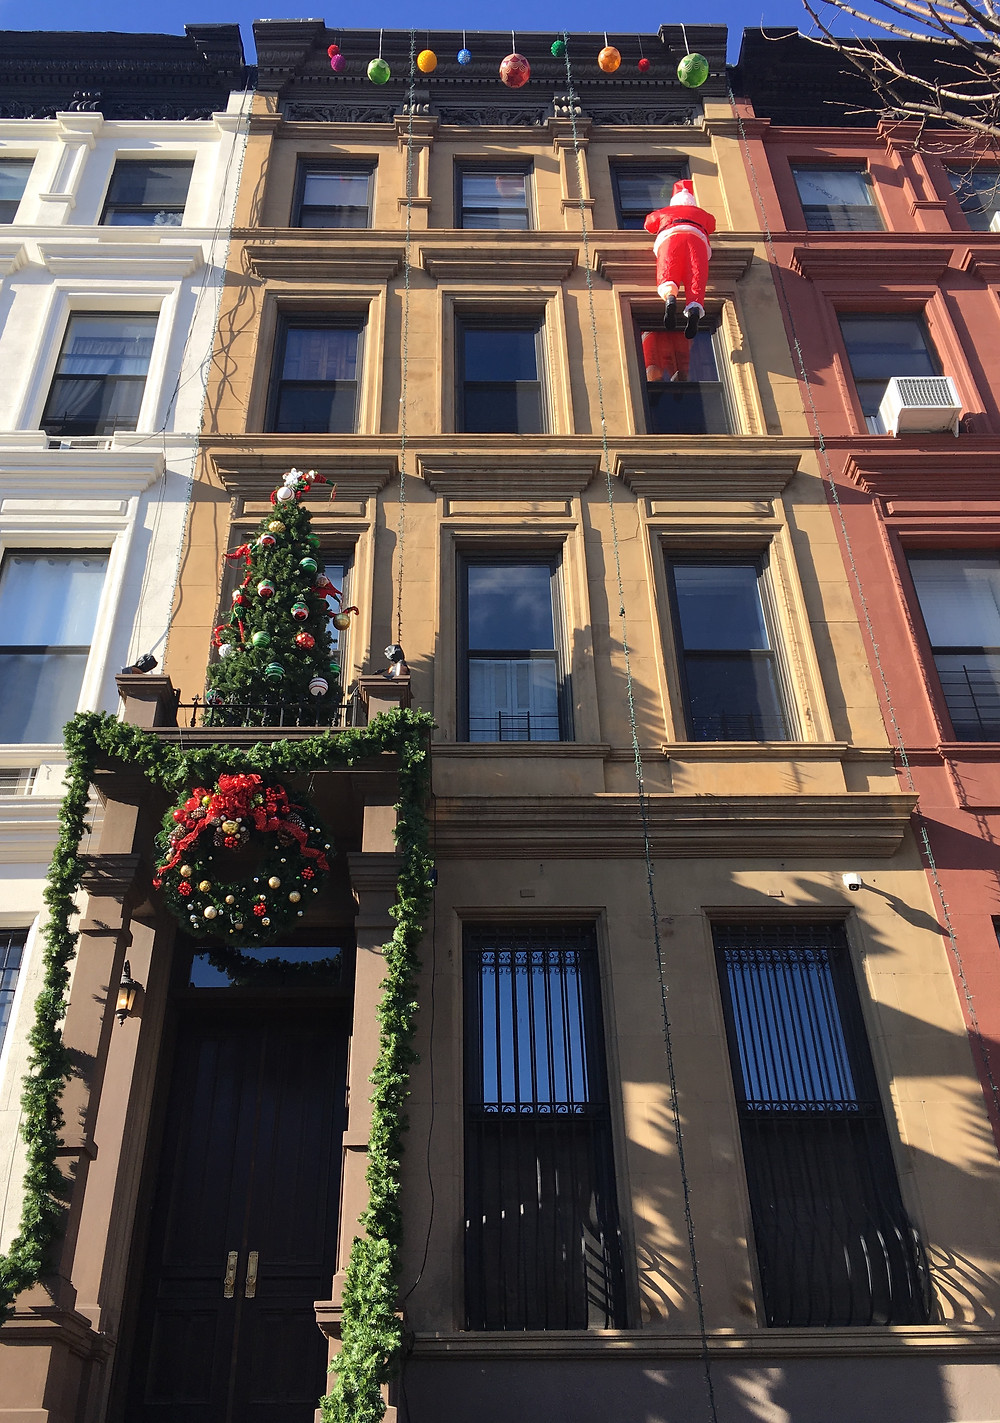 Neil Patrick Harris' townhouse during the holidays